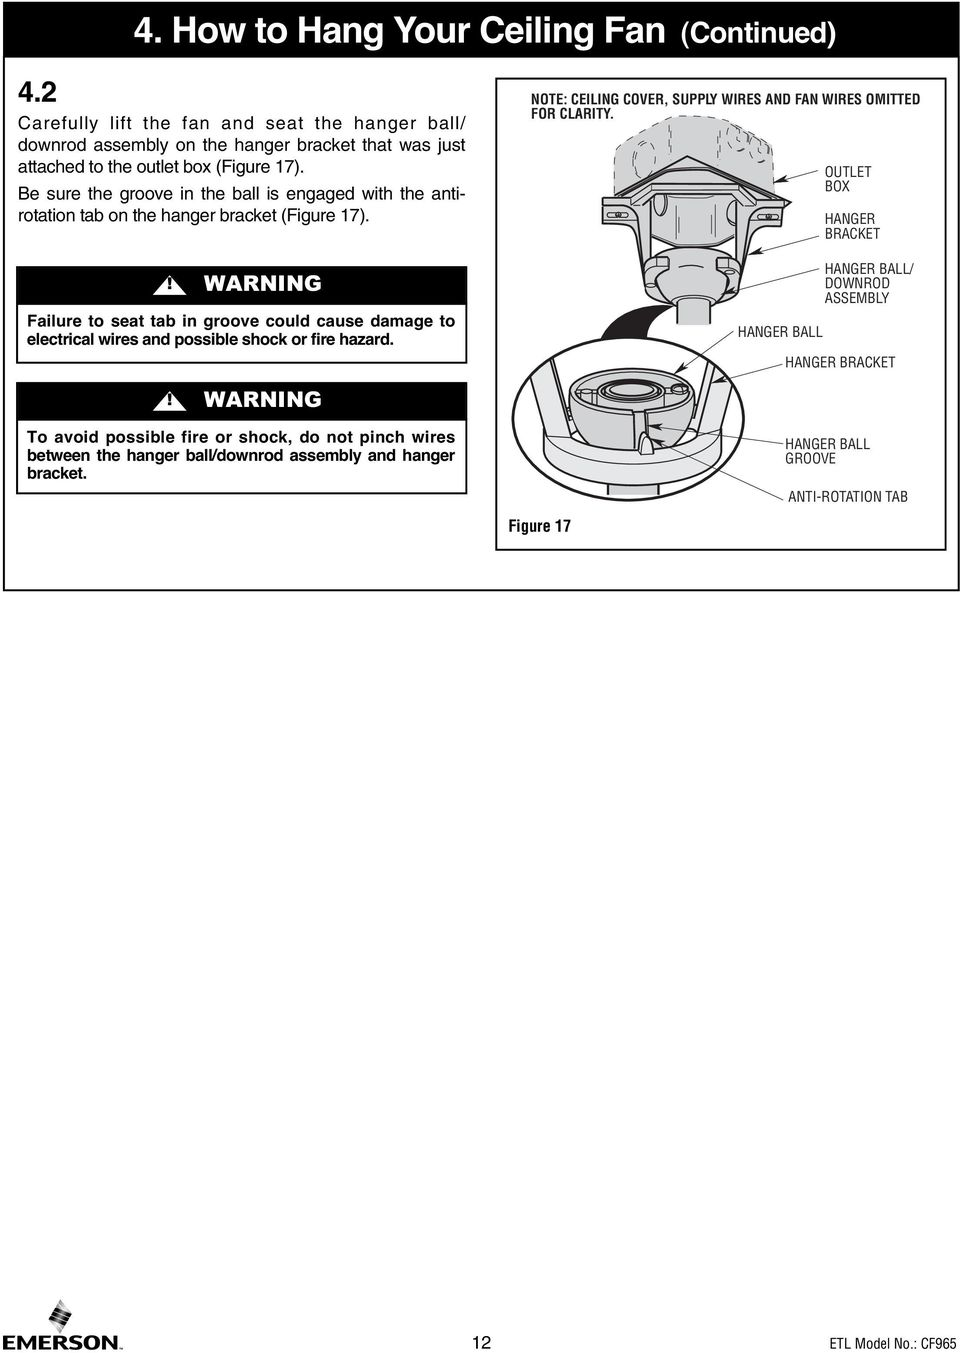 Read And Save These Instructions Portland 54 Ceiling Fan Owners Concord Wiring Diagram Be Sure The Groove In Ball Is Engaged With Antirotation Tab On Hanger